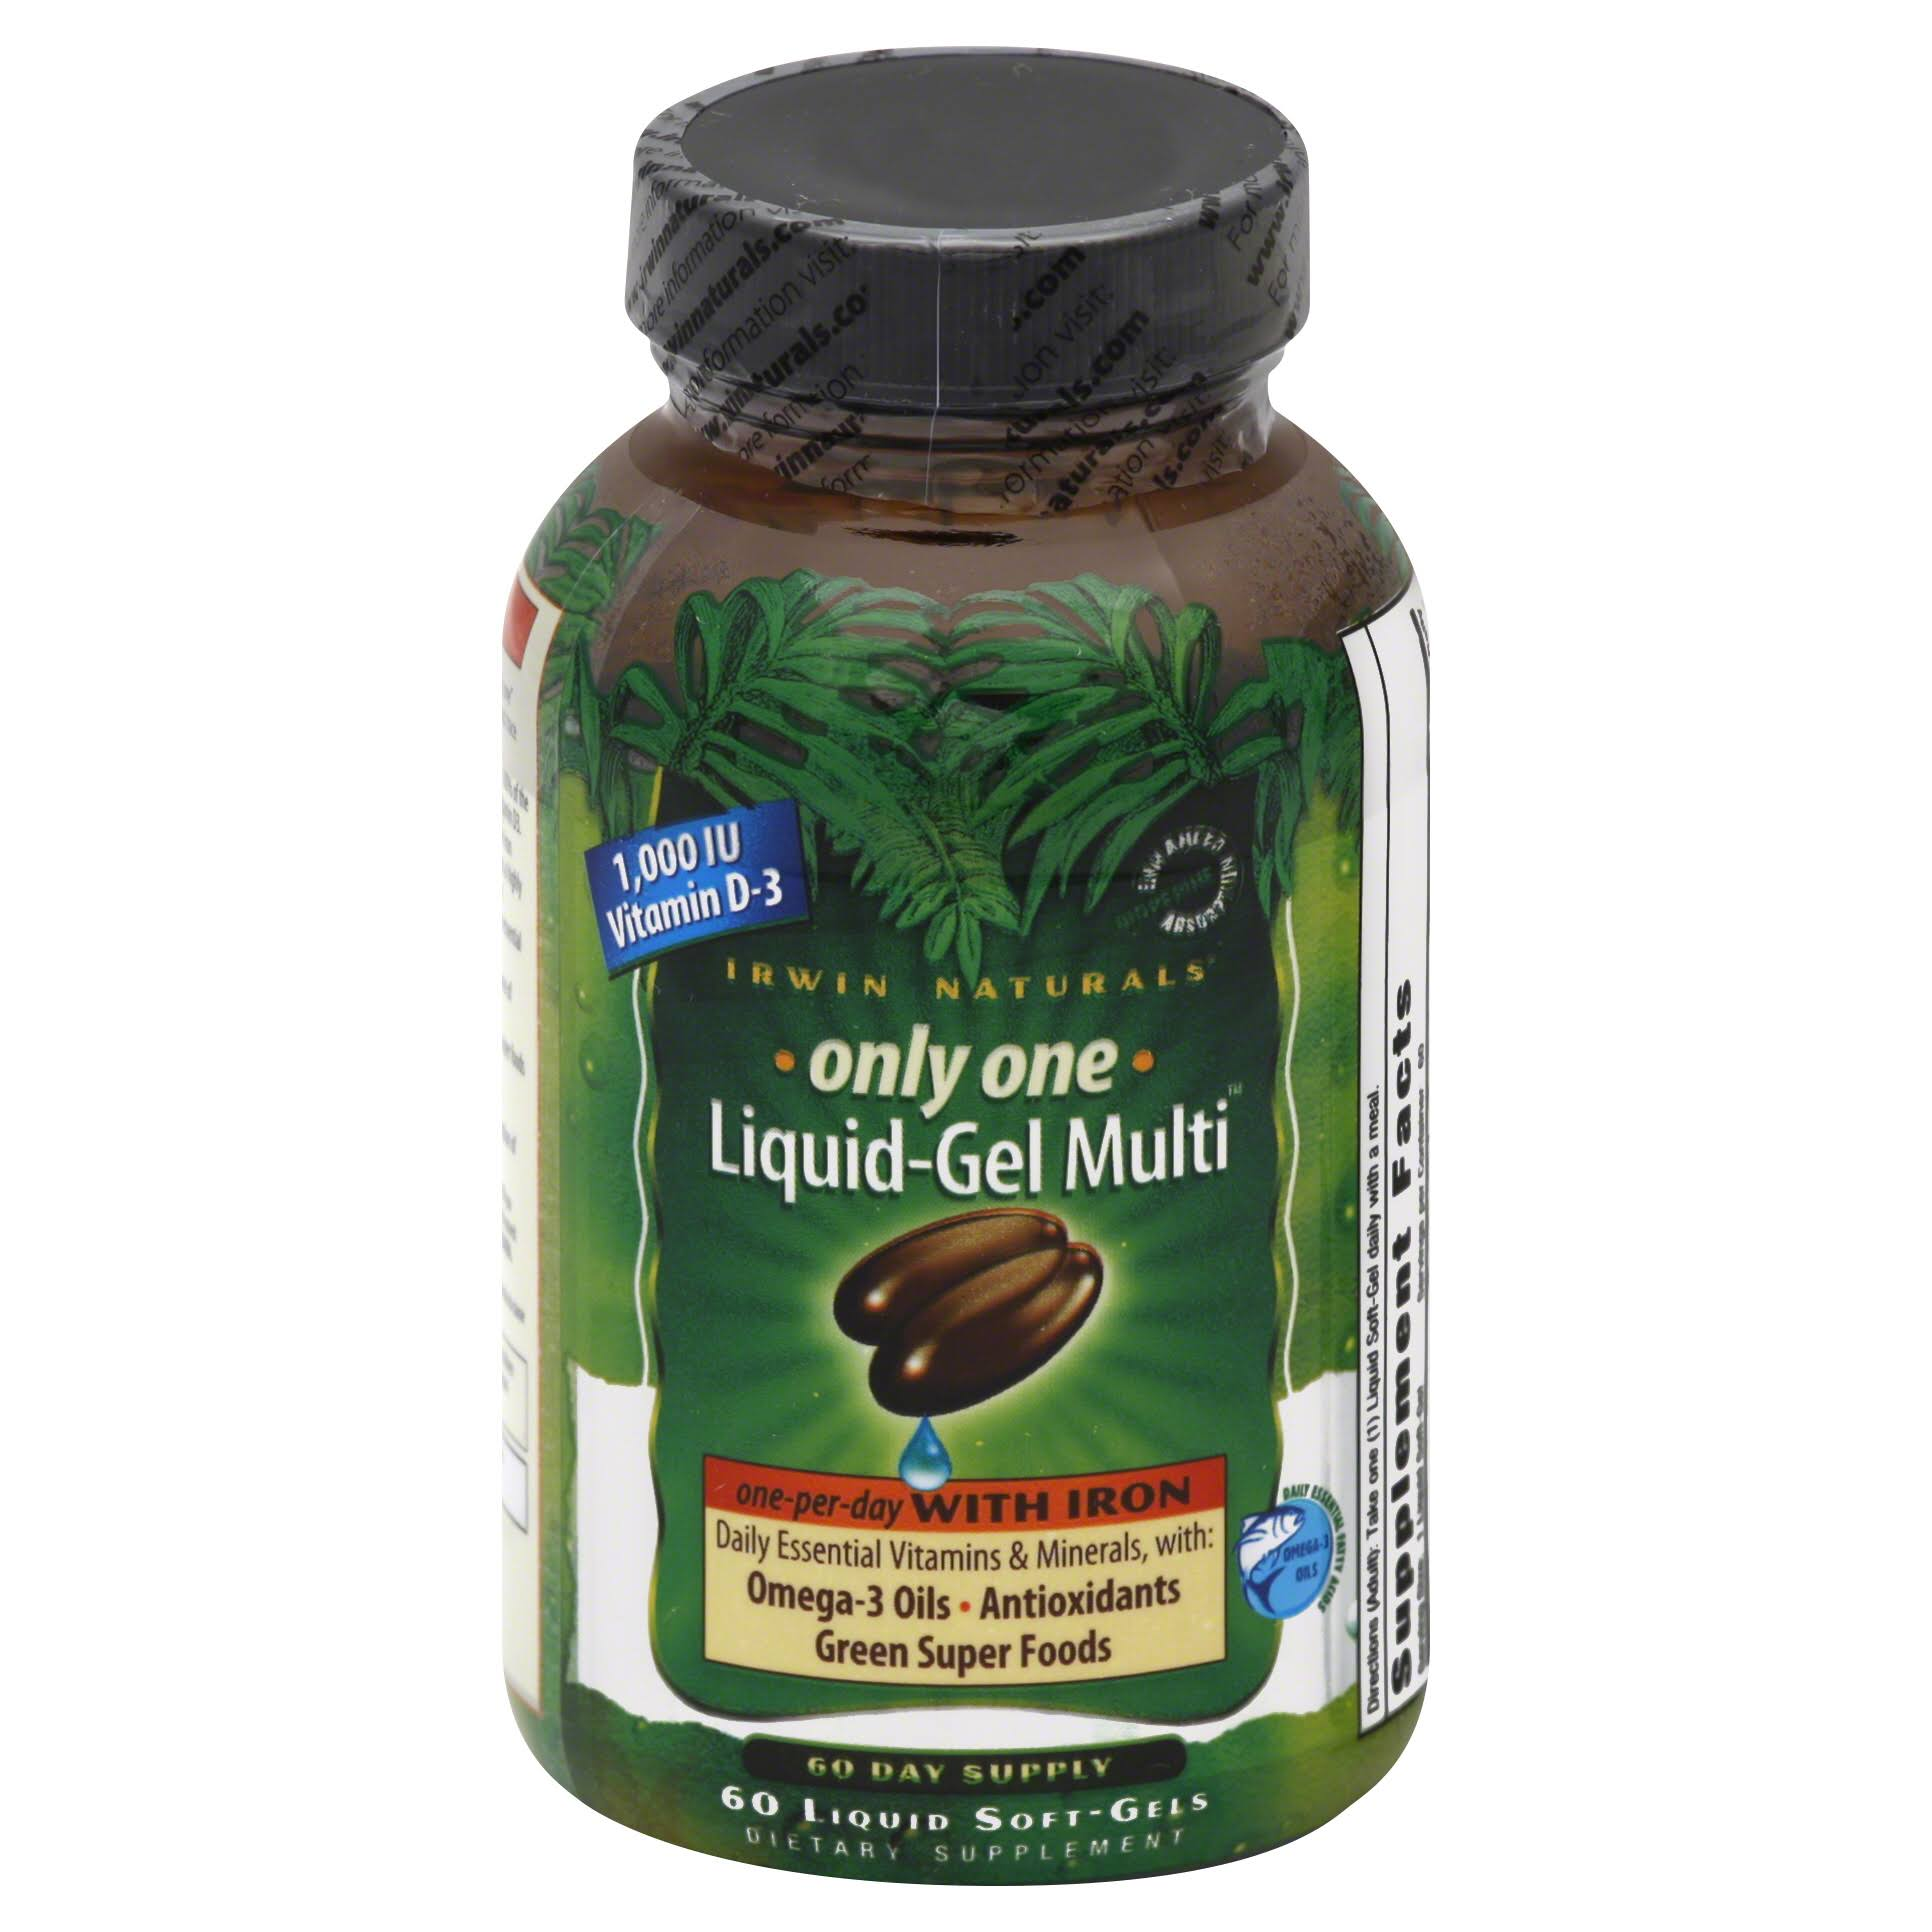 Irwin Naturals Only One Liquid Gel Multi Liquid Dietary Supplement Softgels - 60 Pack